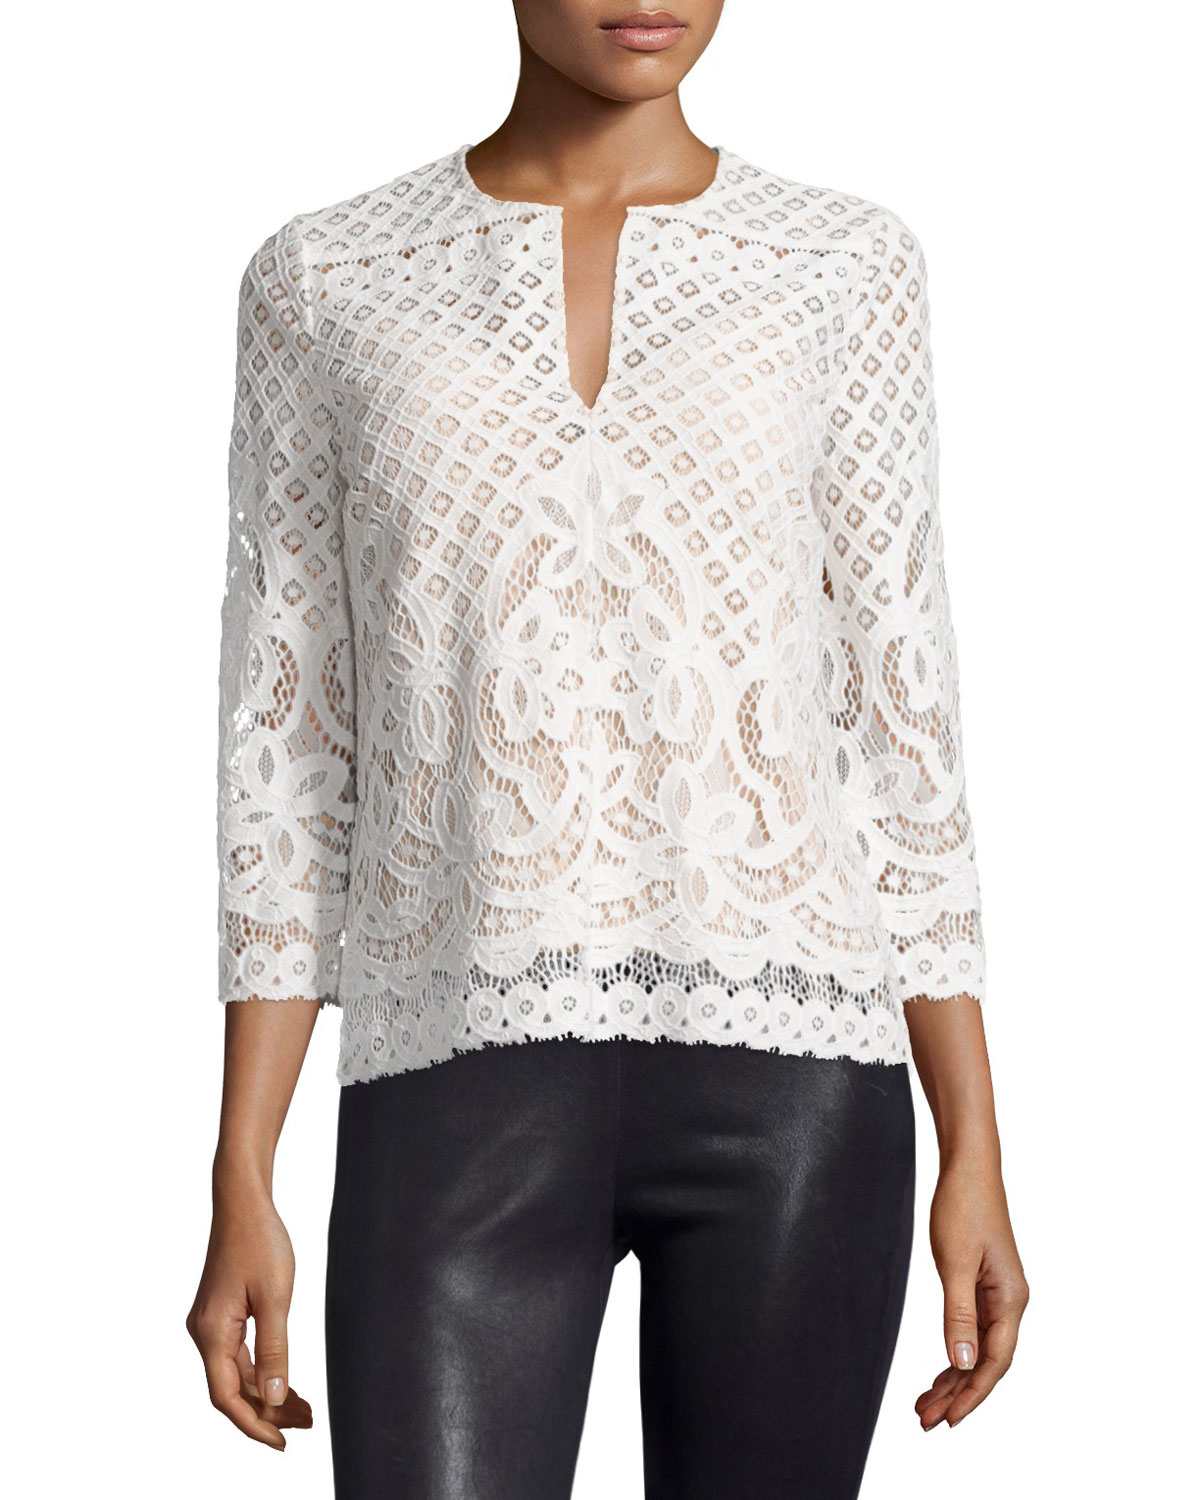 Honora 3/4-Sleeve Lace Top, Ivory, Size: LARGE - BCBGMAXAZRIA